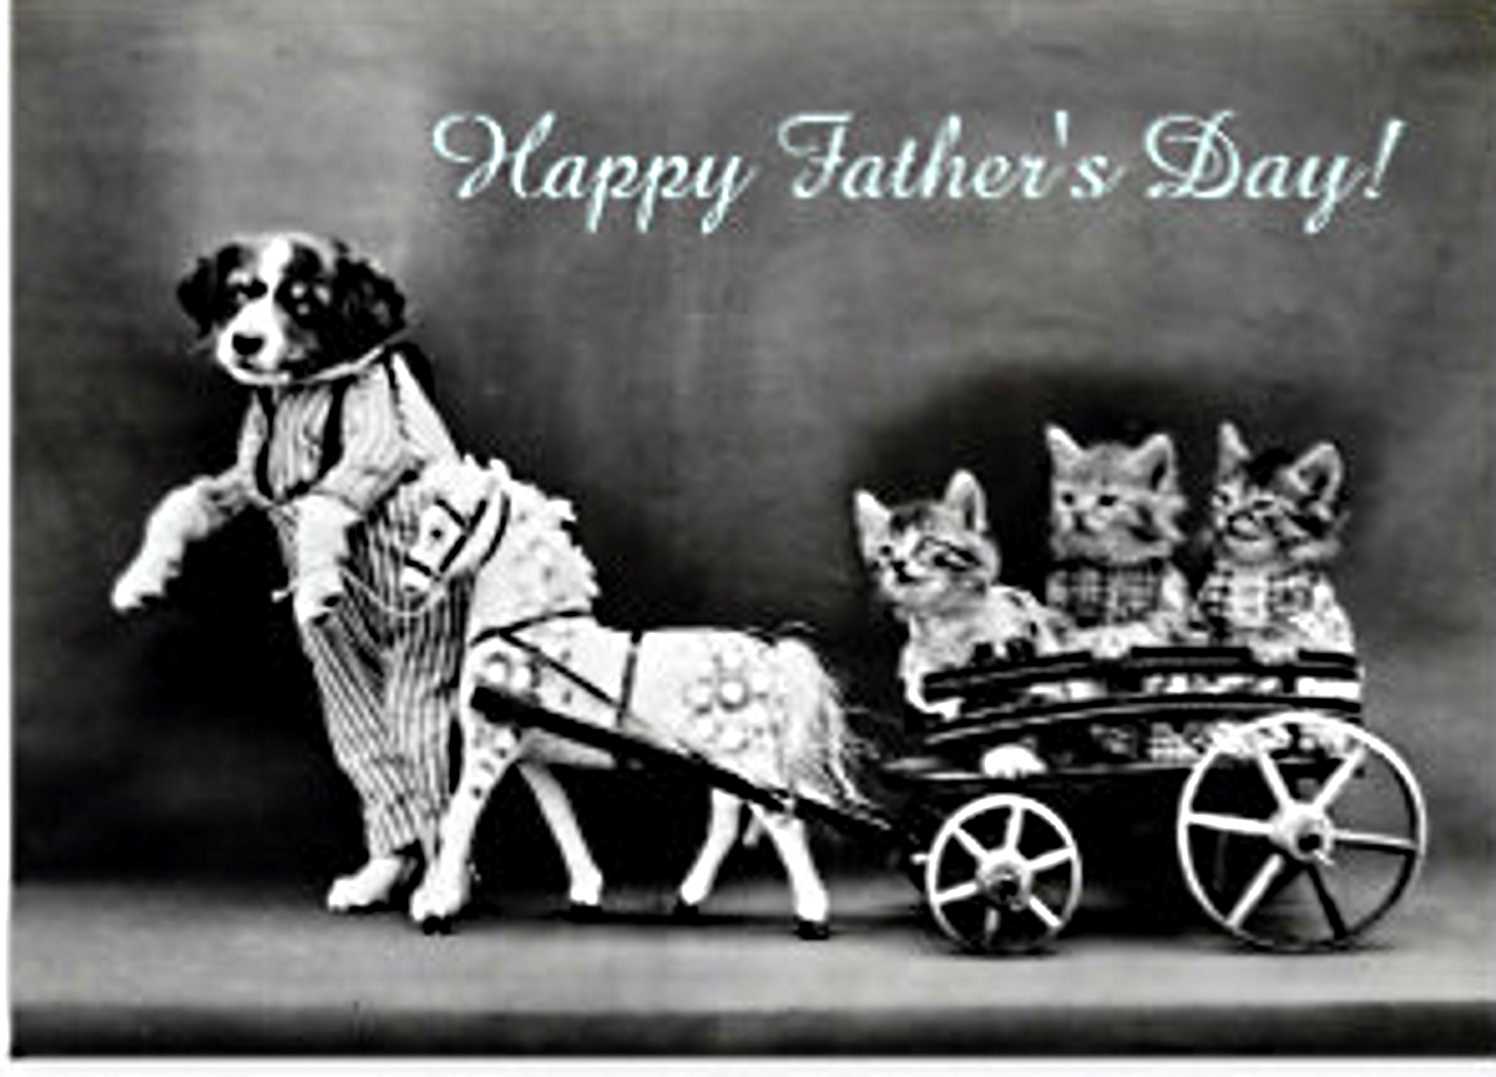 Katiez furry mewz special fathers day birthdays and daddy cat him went otrb last sunday with mommy cat by hims side daddy cat am celebrating fathers day in heaven with sciox Gallery